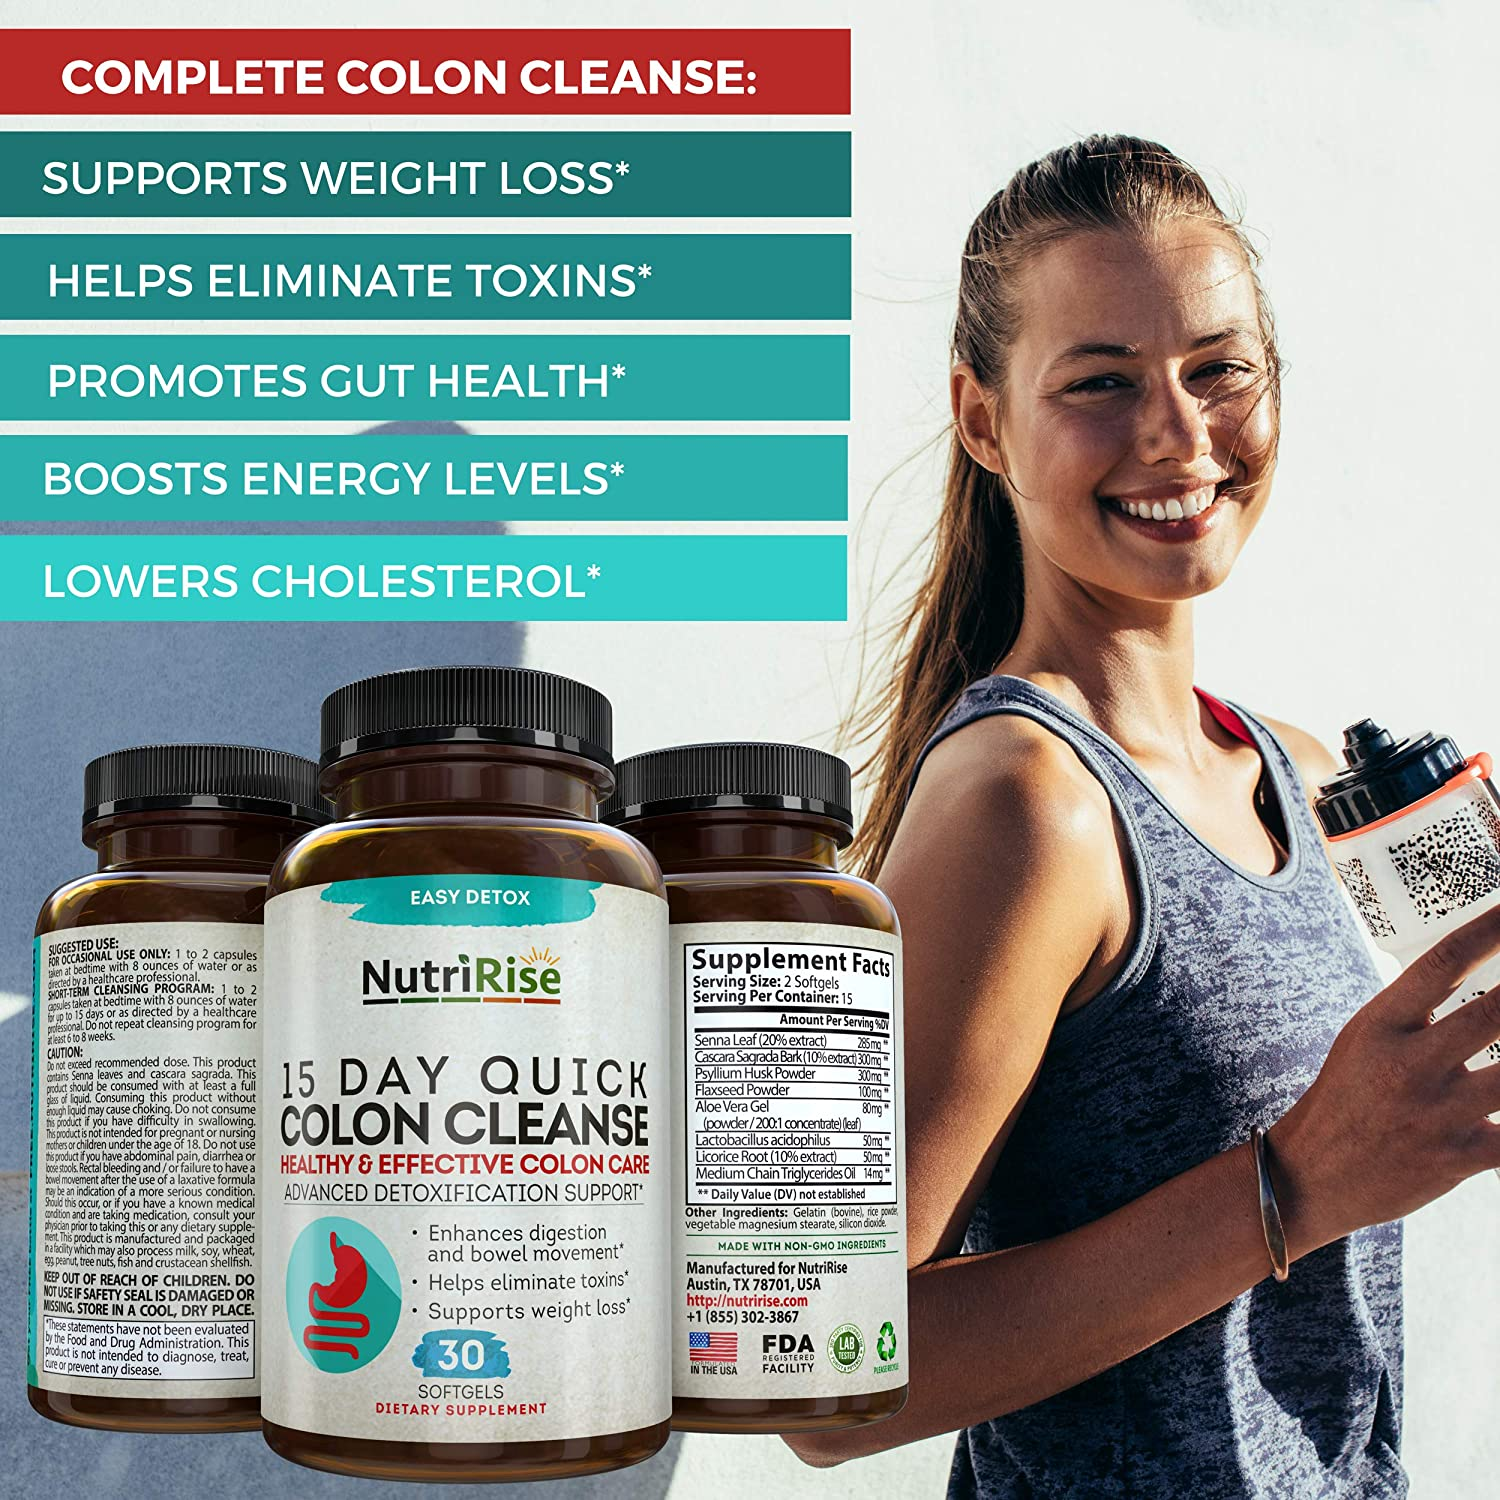 Colon Cleanser Detox for Weight Loss. 15 Day Fast-Acting Extra-Strength Cleanse with Probiotic & Natural Laxatives for Constipation Relief & Bloating Support. 30 Detox Pills to Detoxify & Boost Energy